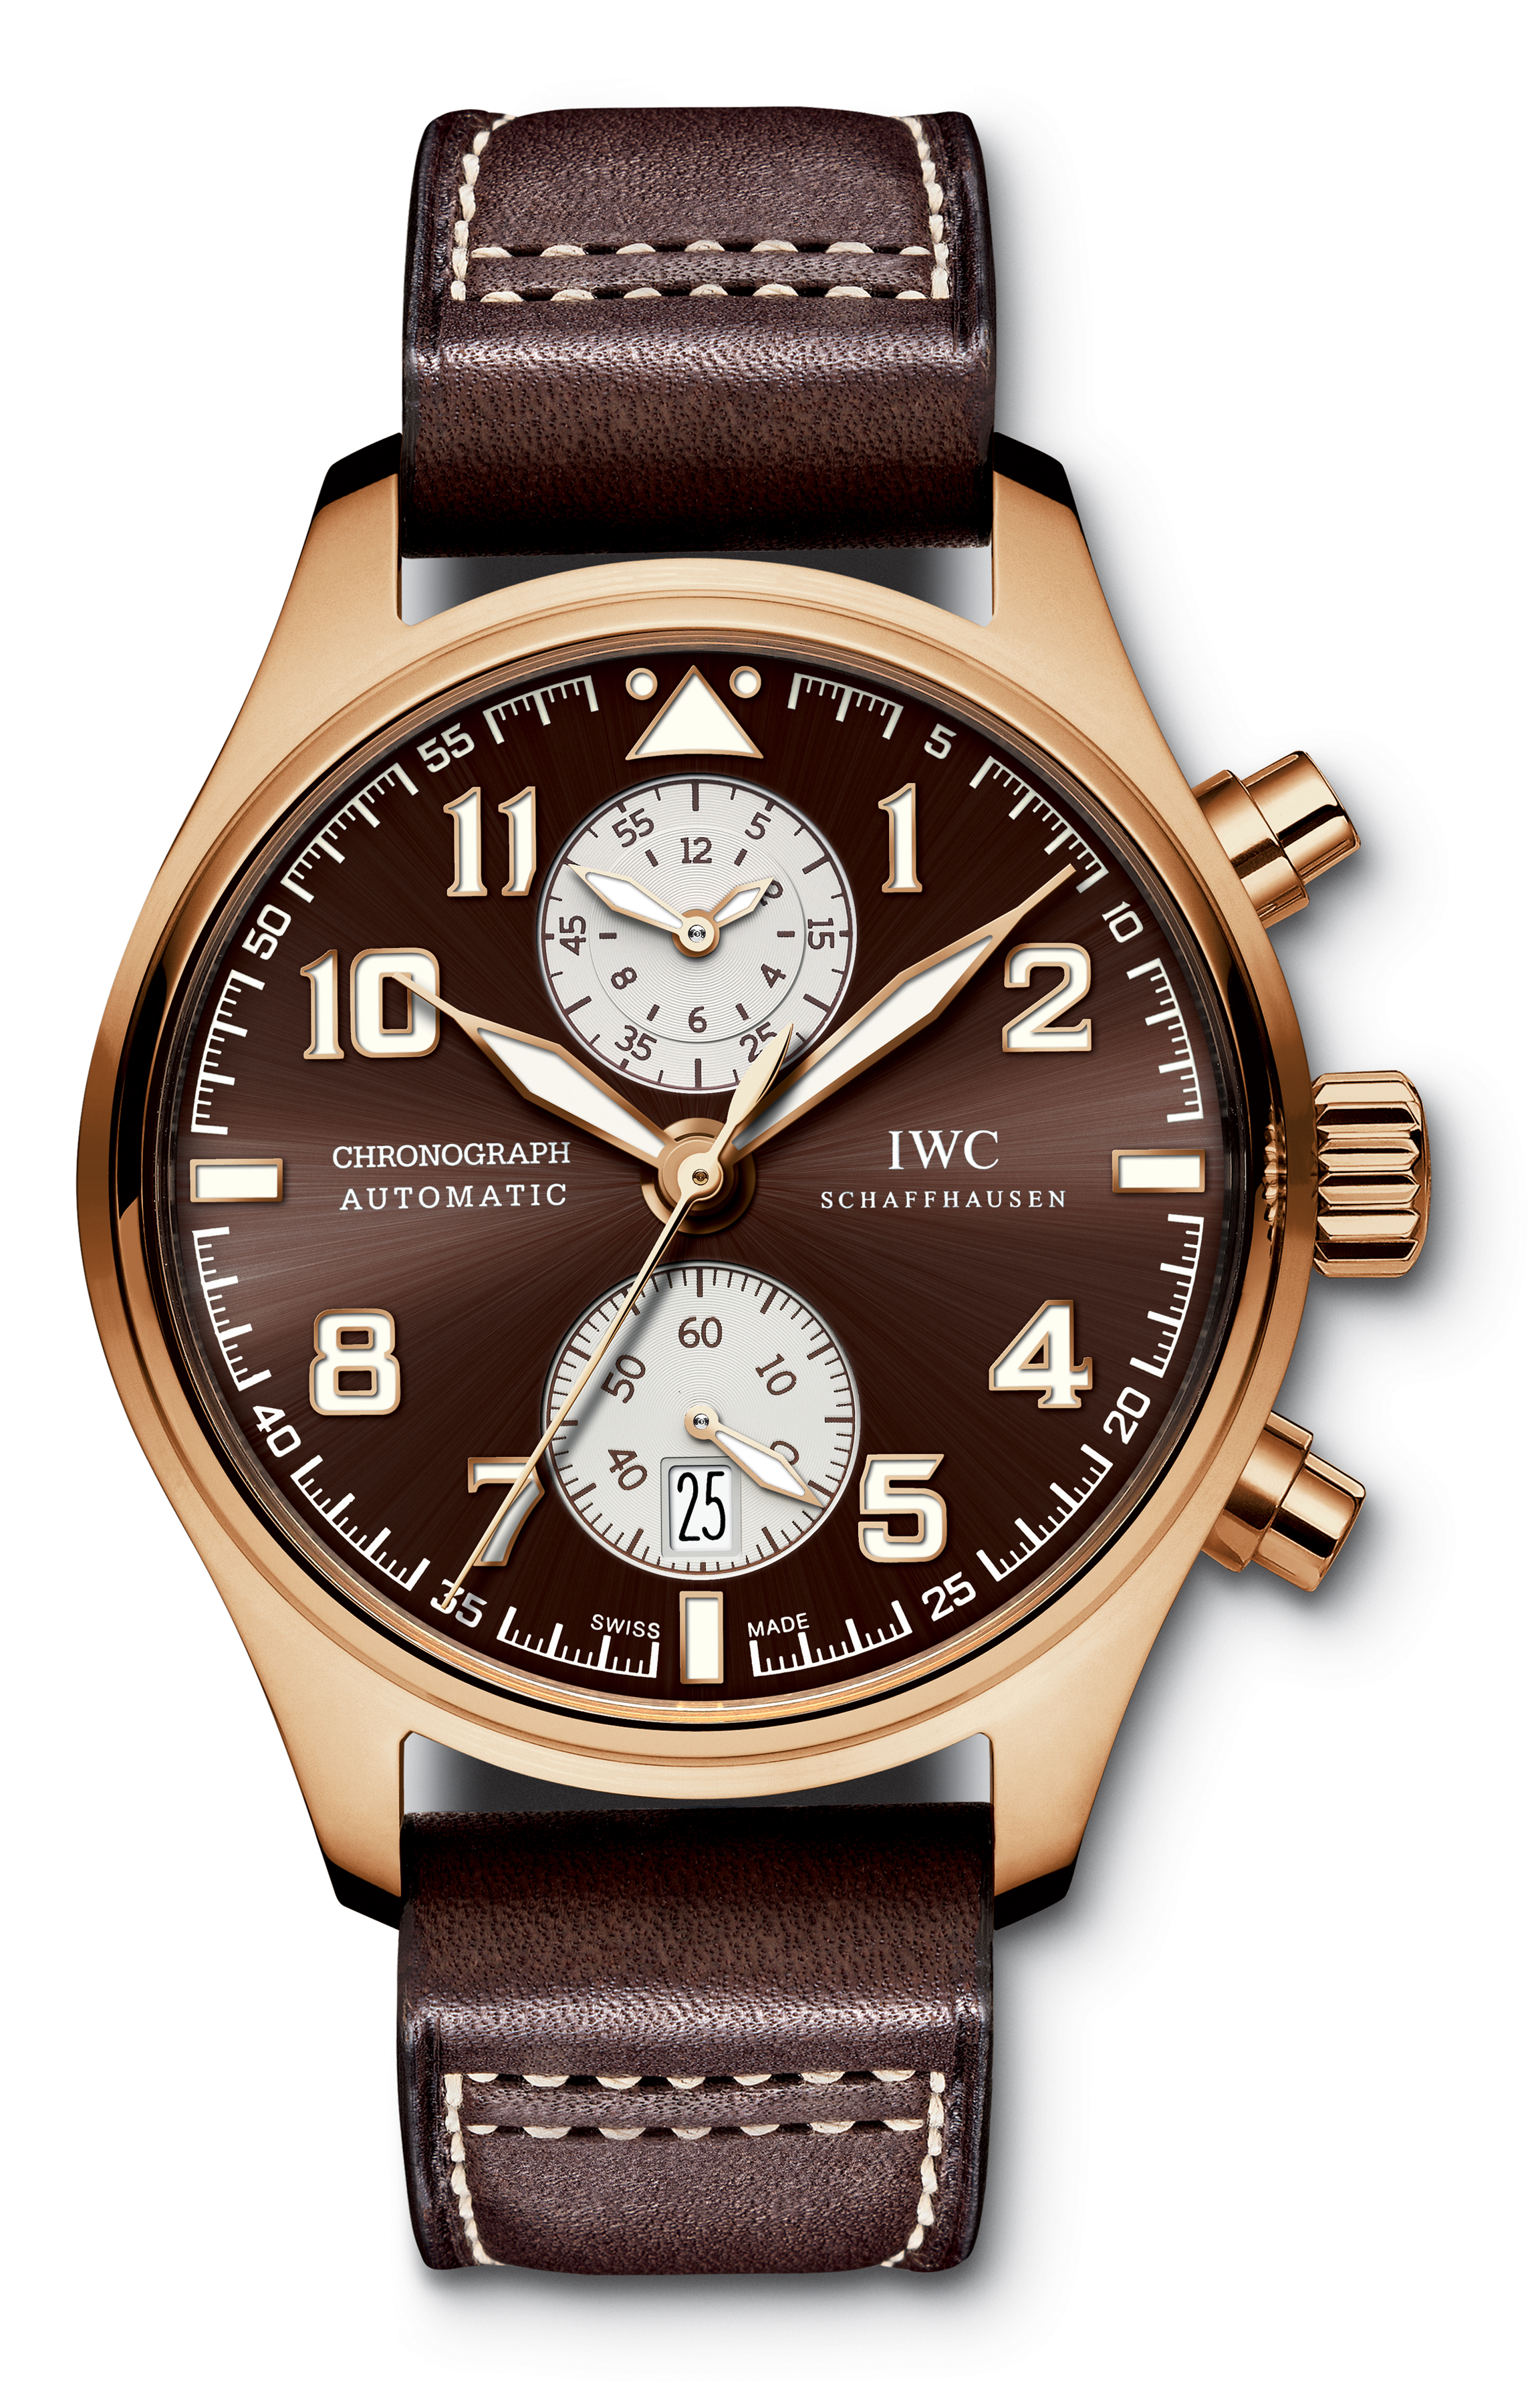 iwc watches bb favorite davinci perpetual english steel your vinci da stainless